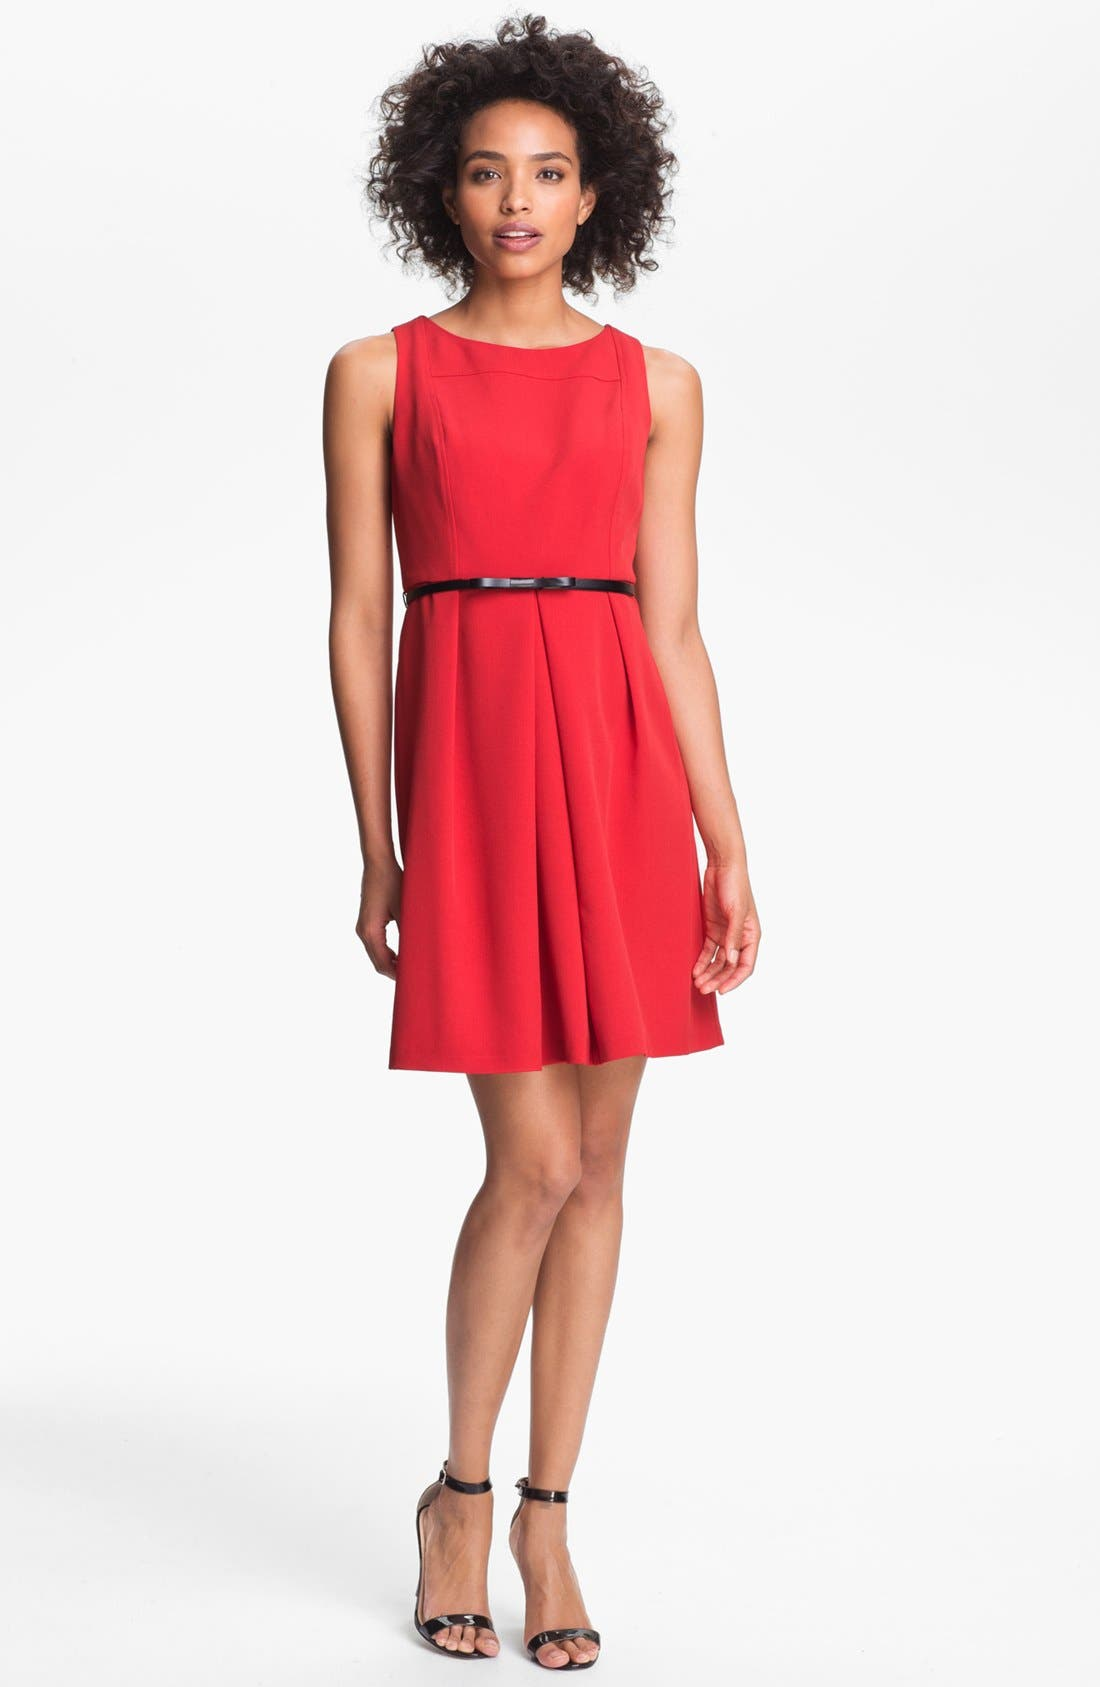 Alternate Image 1 Selected - Adrianna Papell Seamed A-Line Dress (Petite)